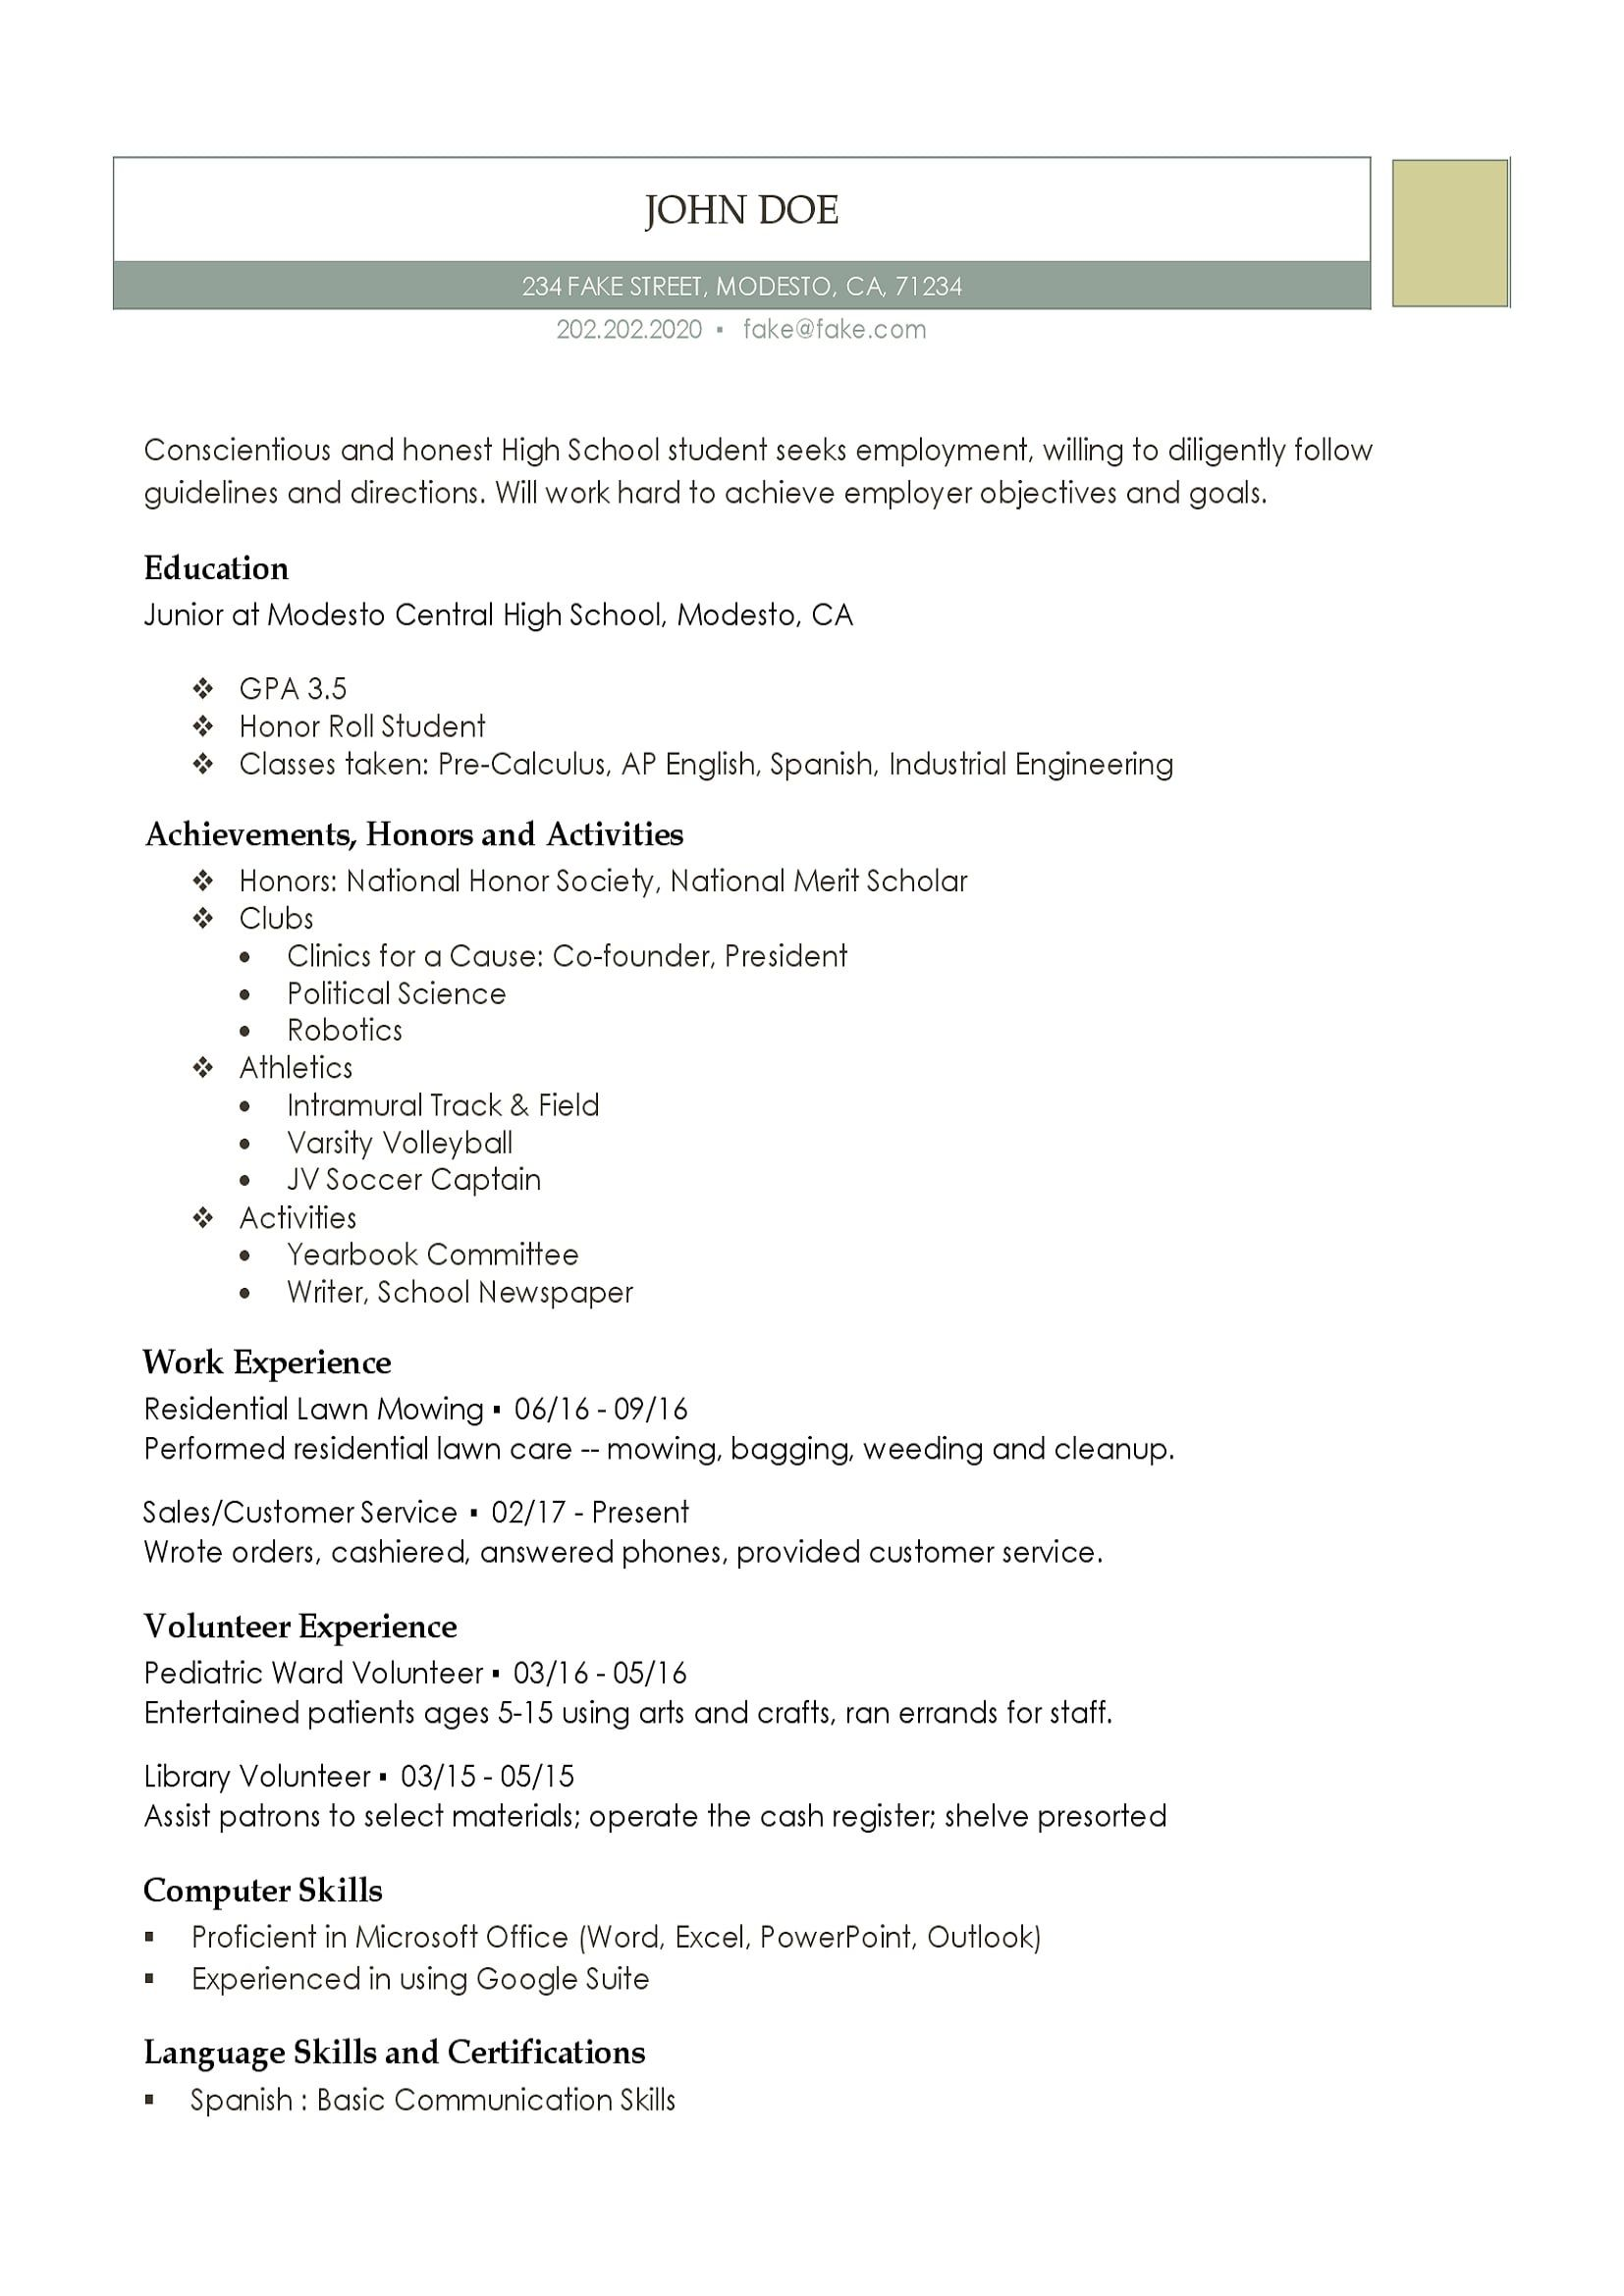 003 Unforgettable Free High School Resume Template Microsoft Word Inspiration Full